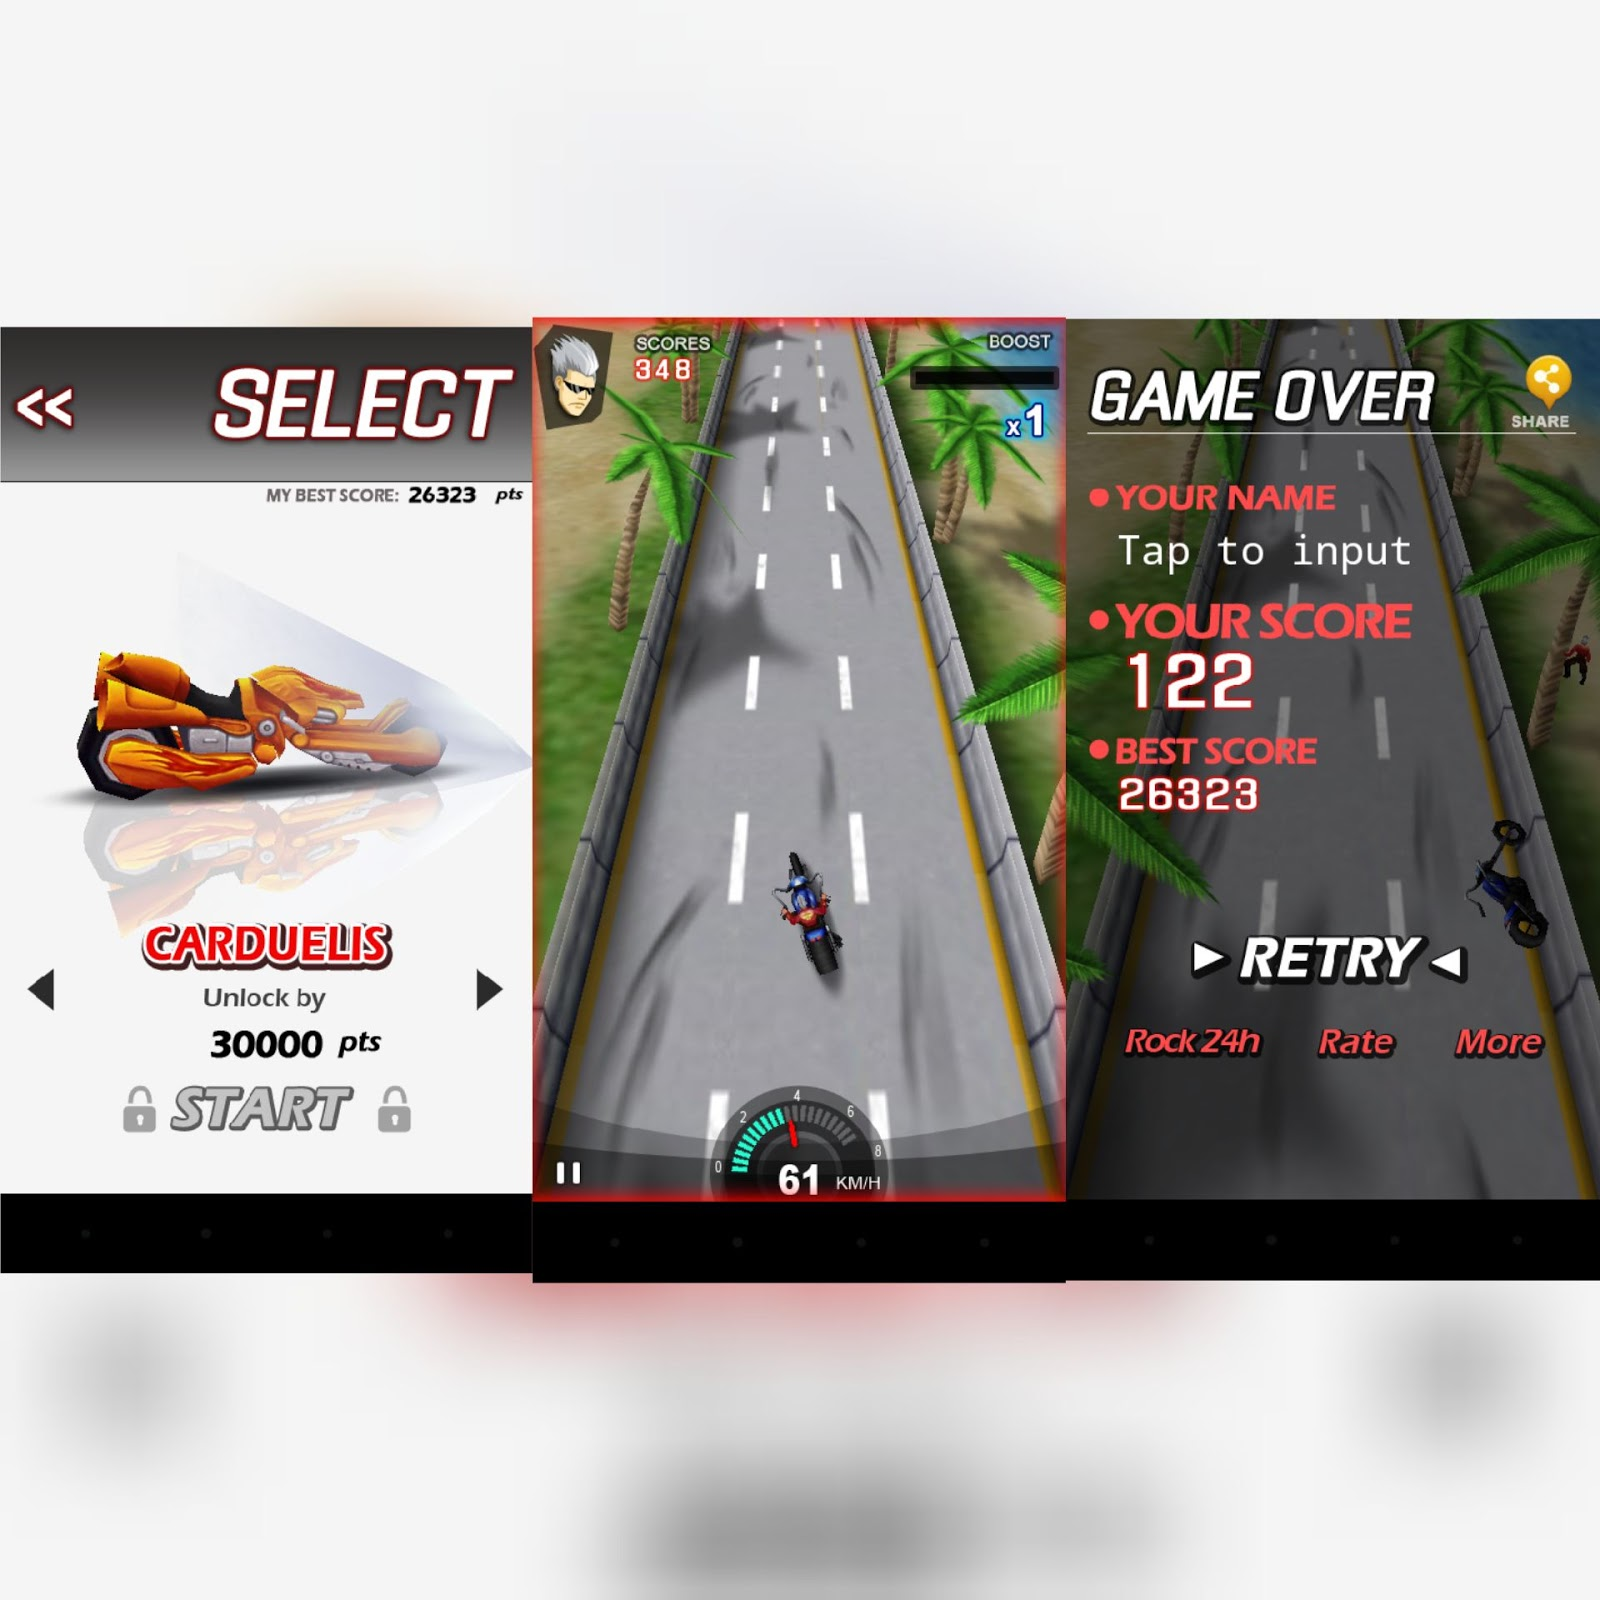 Top 5 Best Android Games Under 10 MB 2019 - Appy Android